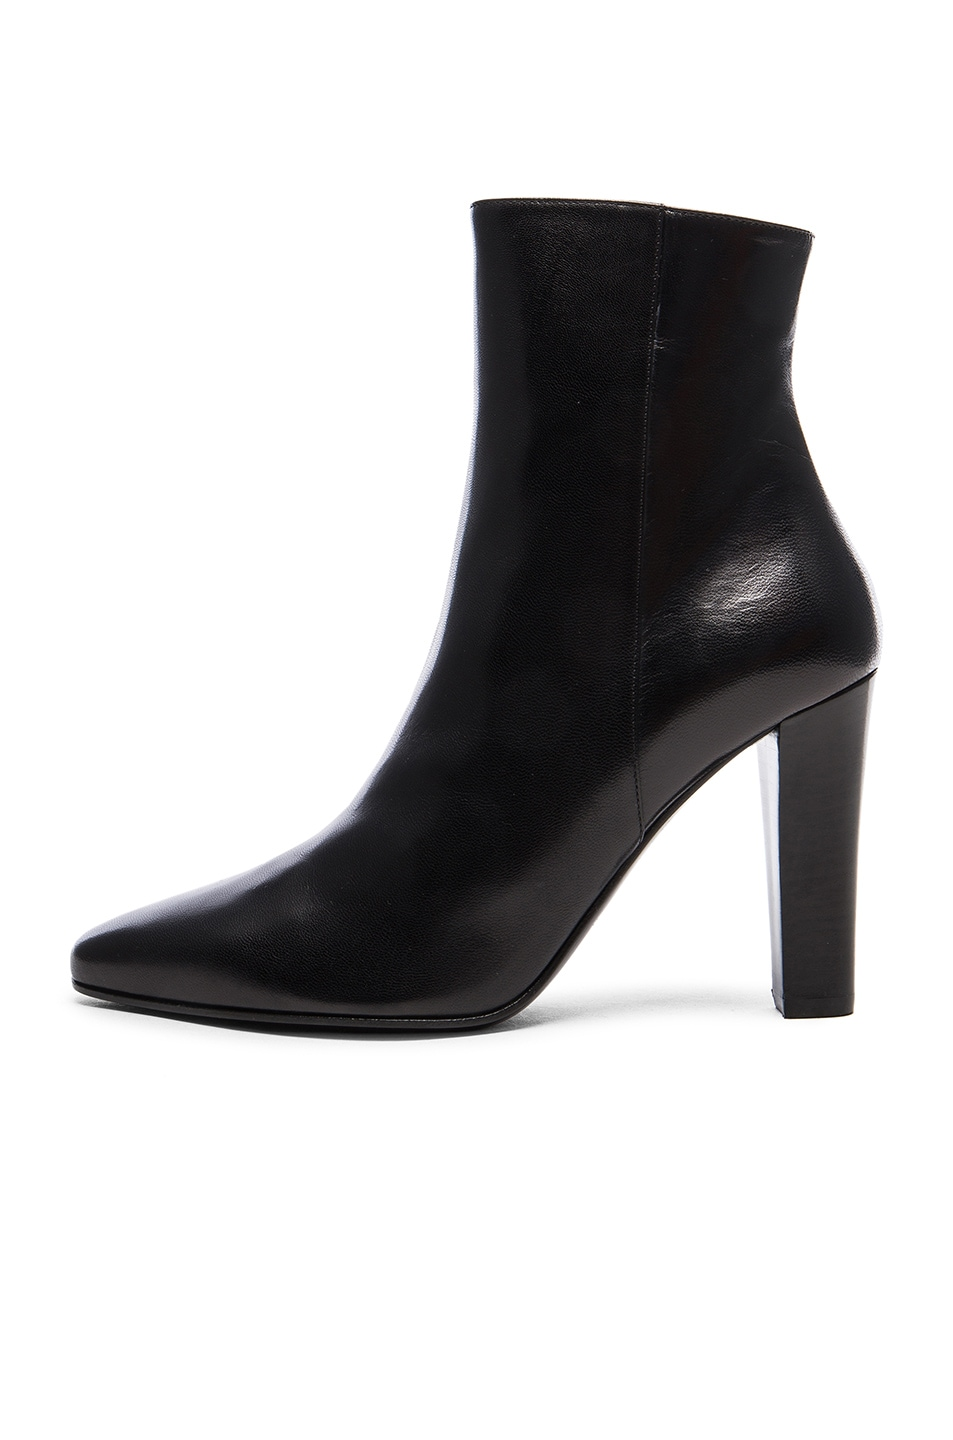 Image 5 of Saint Laurent Lily Zip Booties in Black